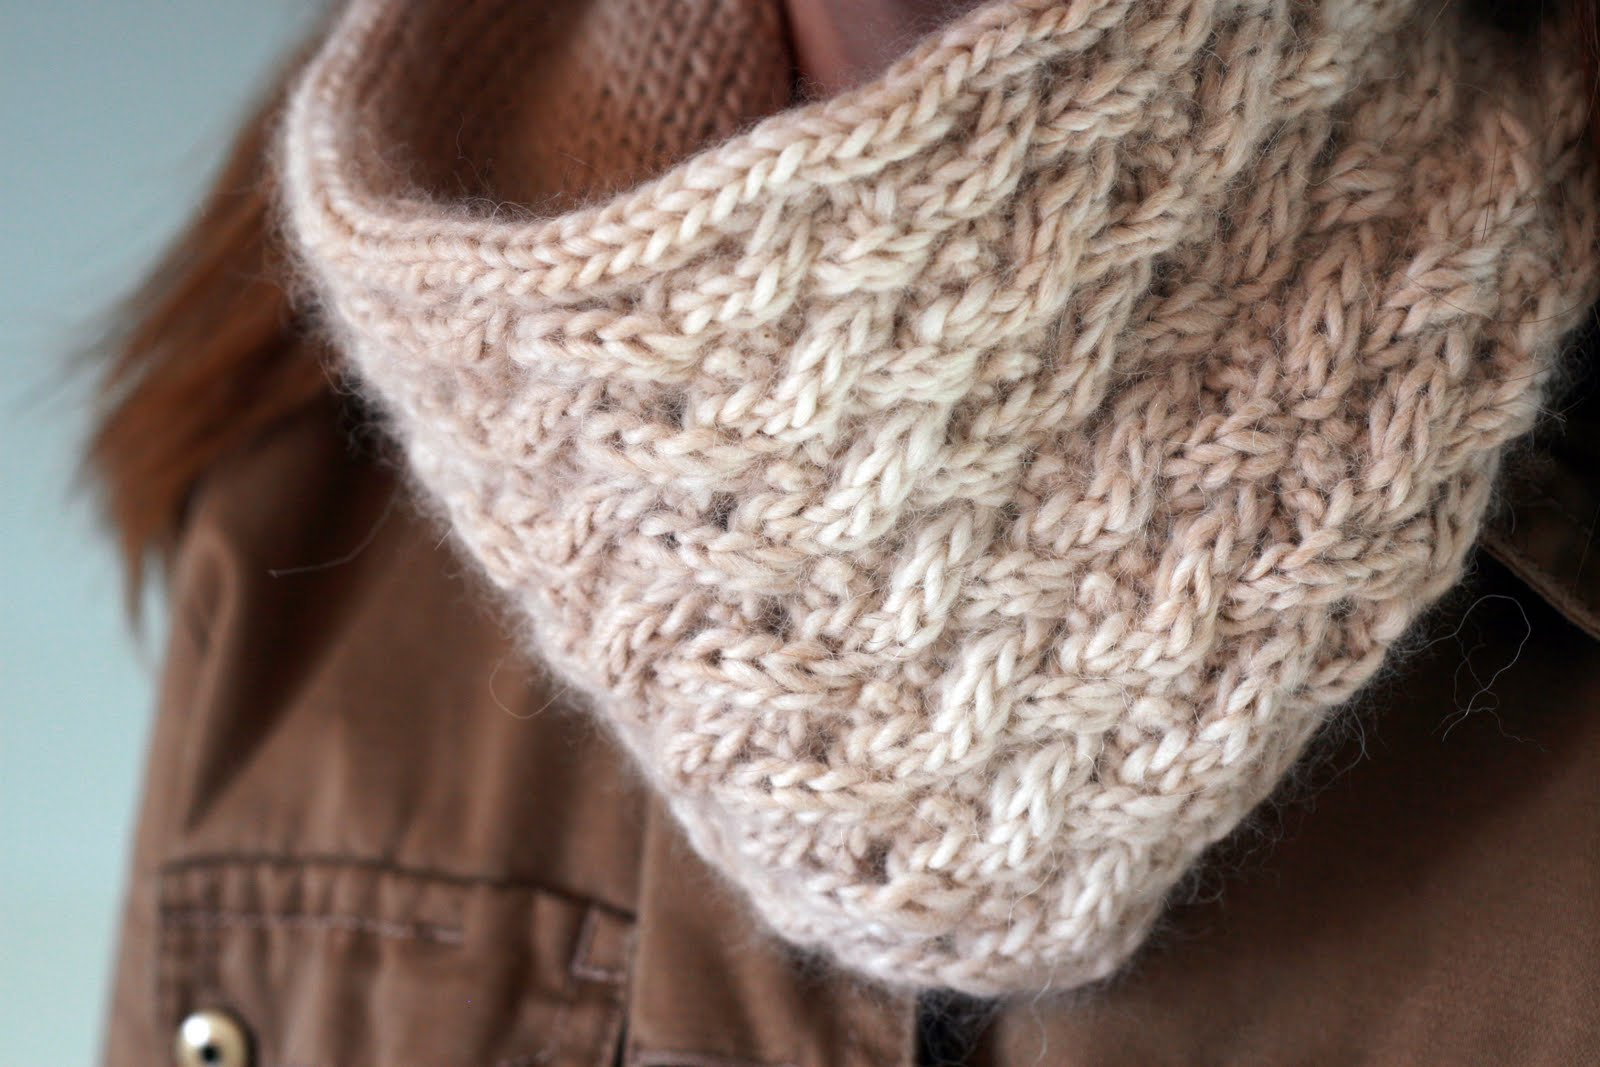 Crochet Knit Stitch In The Round : KATE PRESTON HANDKNITS /BLOG: Update: Lattice Stitch Cowl